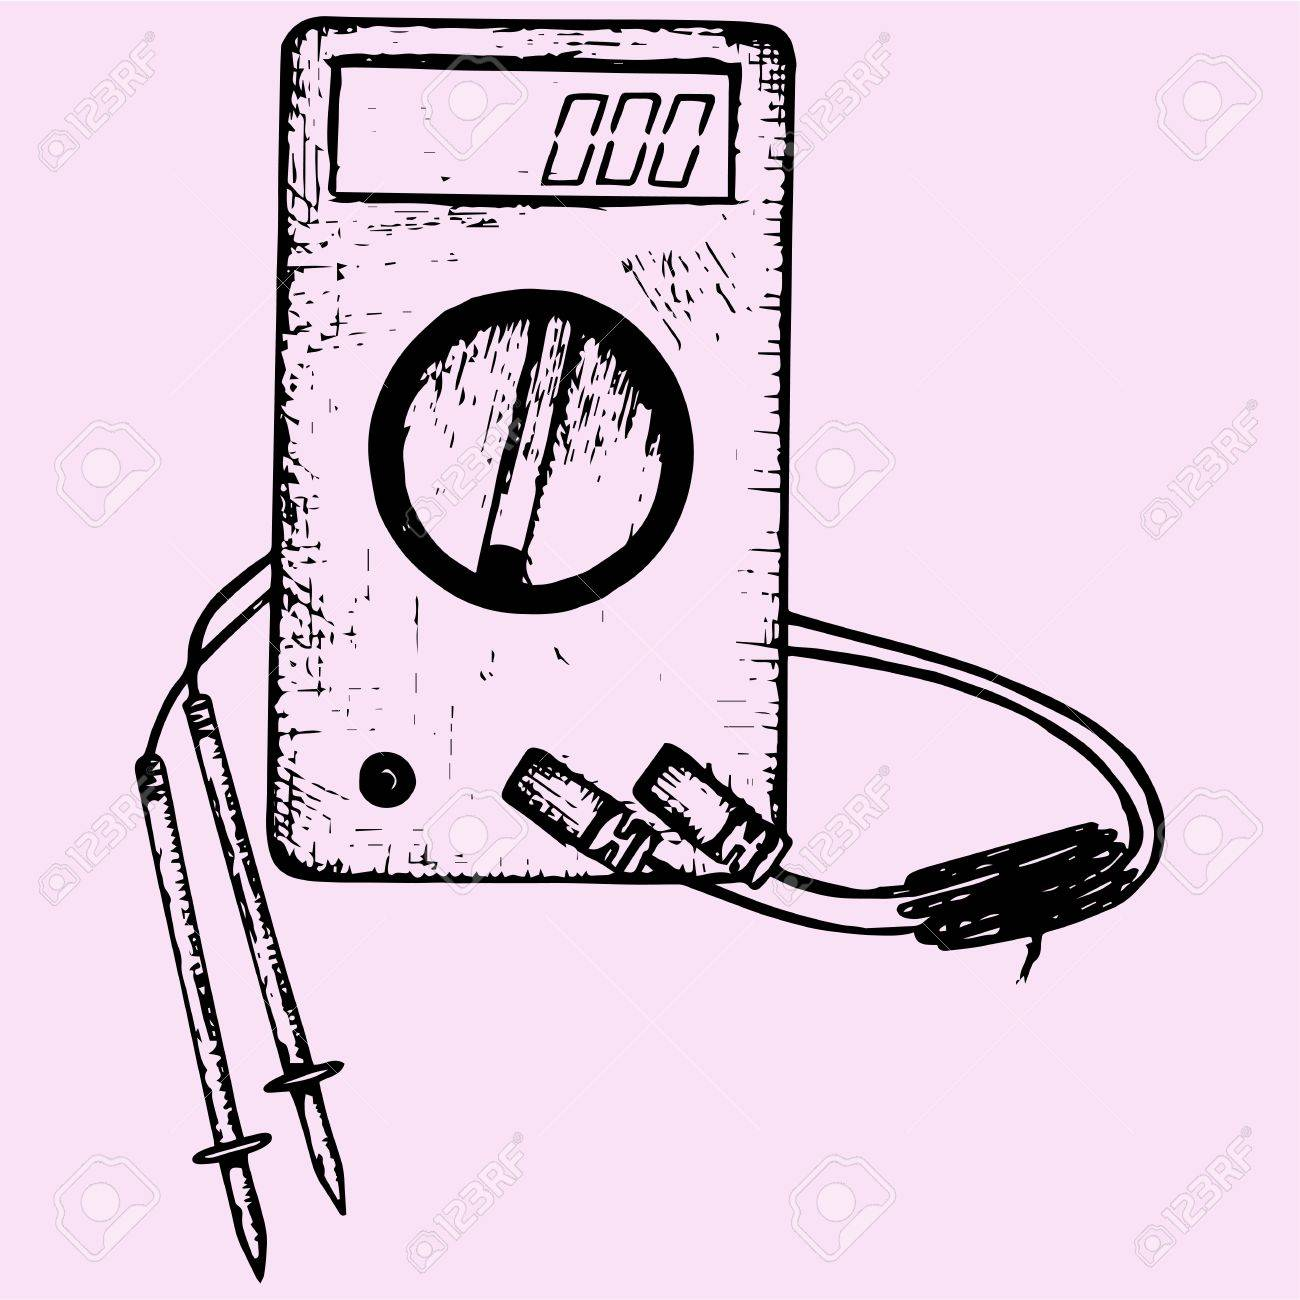 1300x1300 Digital Multimeter With Wires Shows 0 Volts On Lcd Display